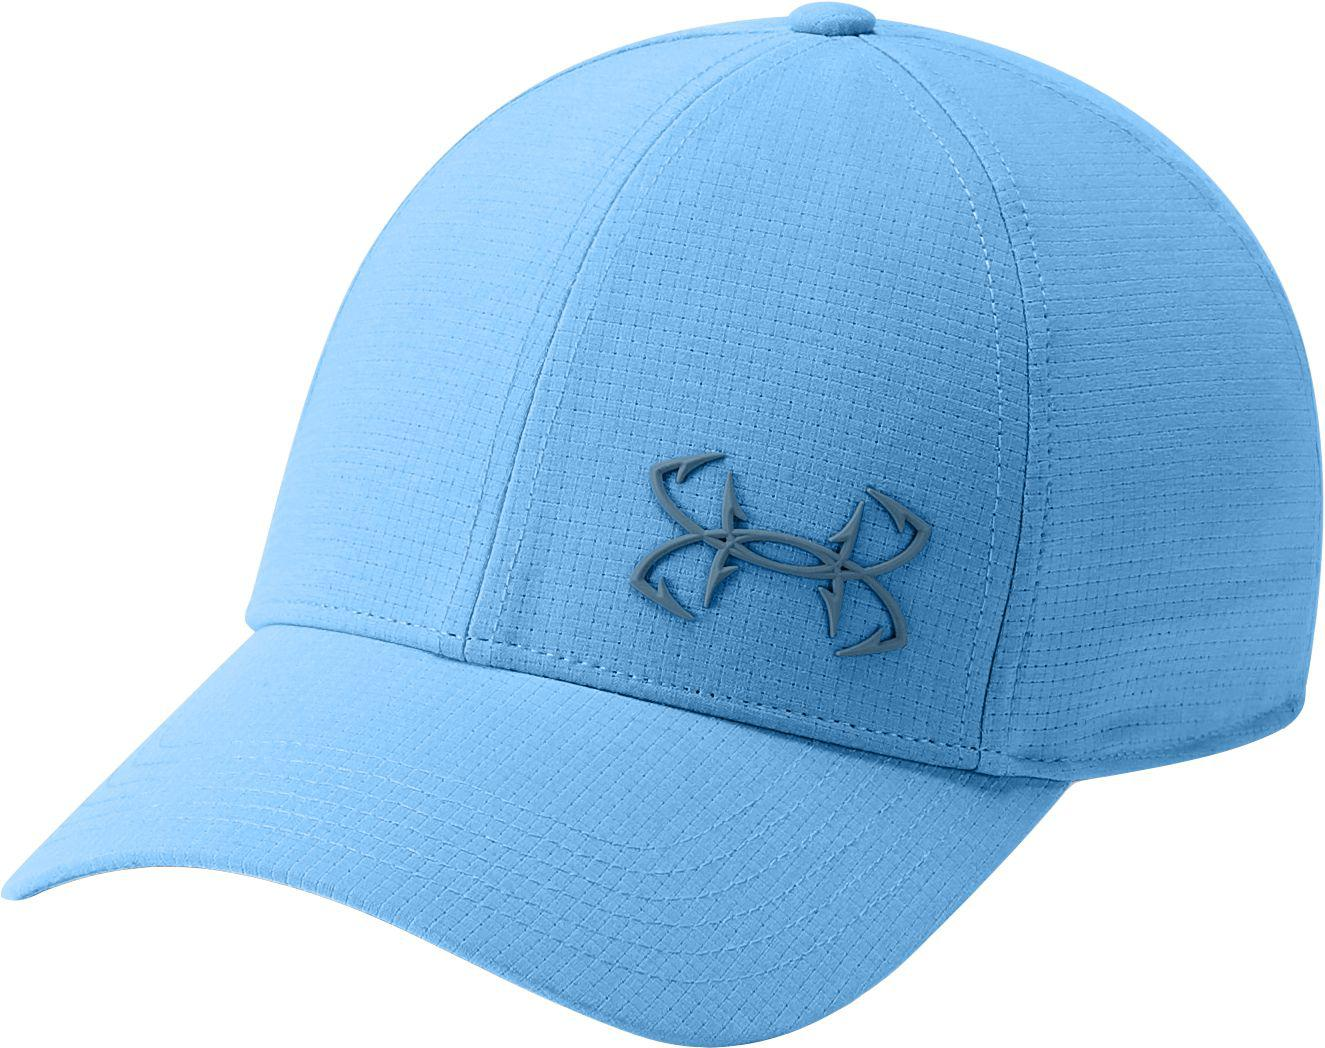 9f5807fc11e Under Armour - Blue Coolswitch Armourvent Fishing Hat for Men - Lyst. View  fullscreen